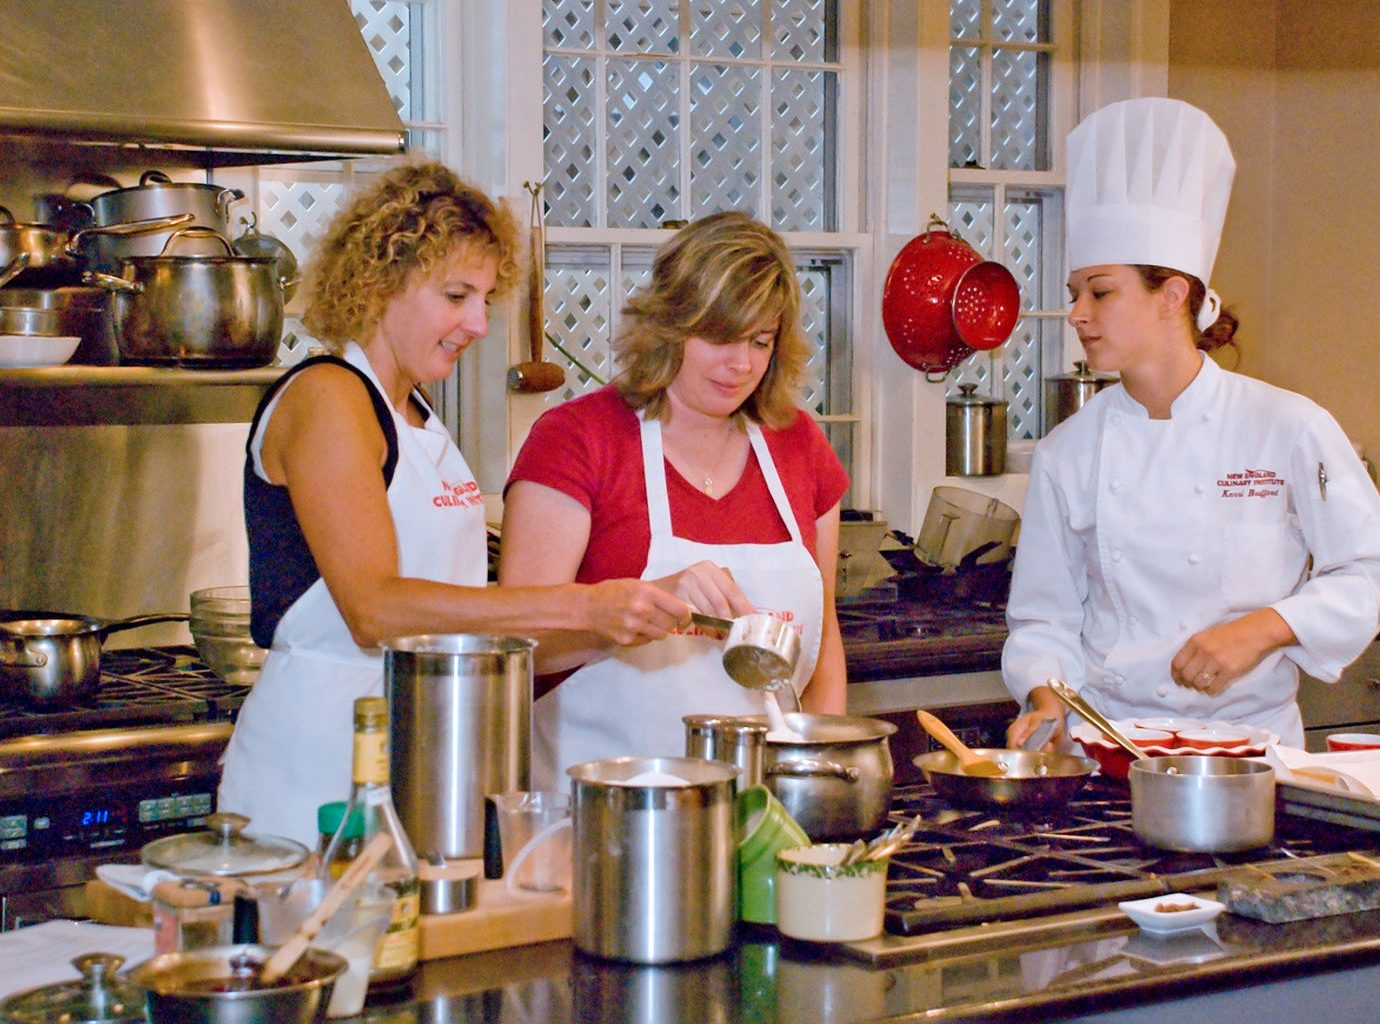 Country Eat Family Kitchen Resort food cook preparing cooking lunch culinary art brunch professional sense baking restaurant